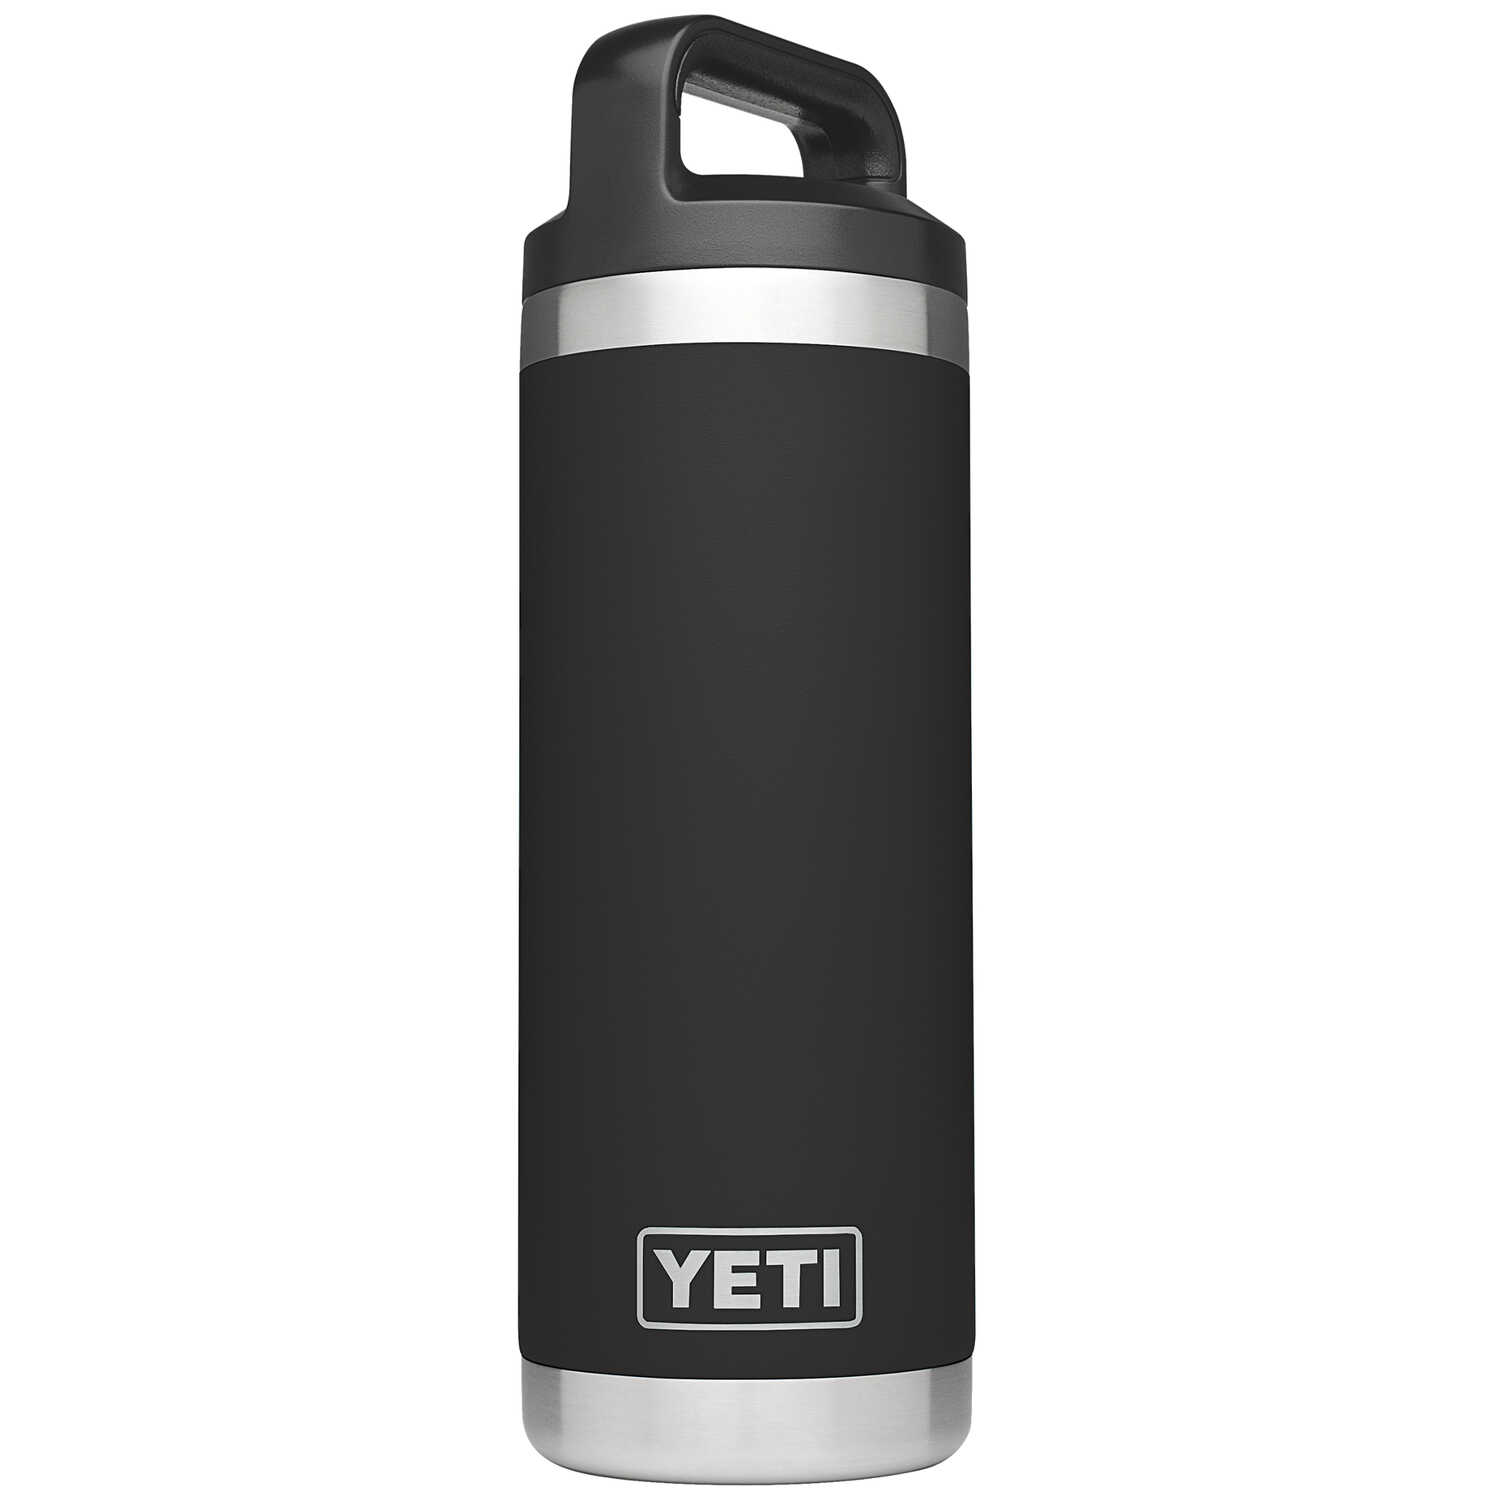 YETI  Rambler  Black  Stainless Steel  Insulated Bottle  BPA Free 18 oz.